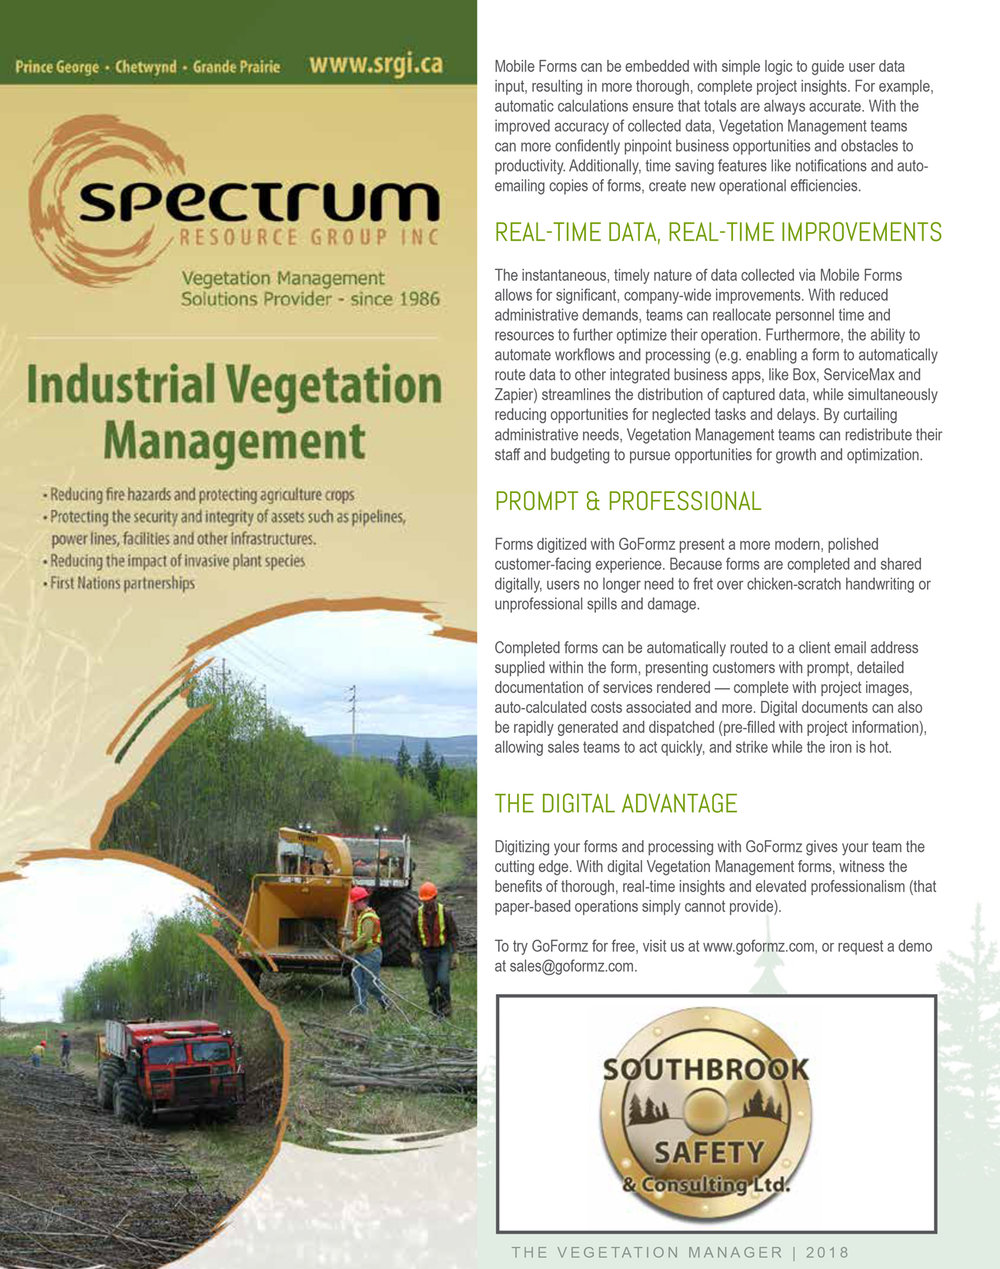 Vegetation Manager Magazine highlights GoFormz - Page 2